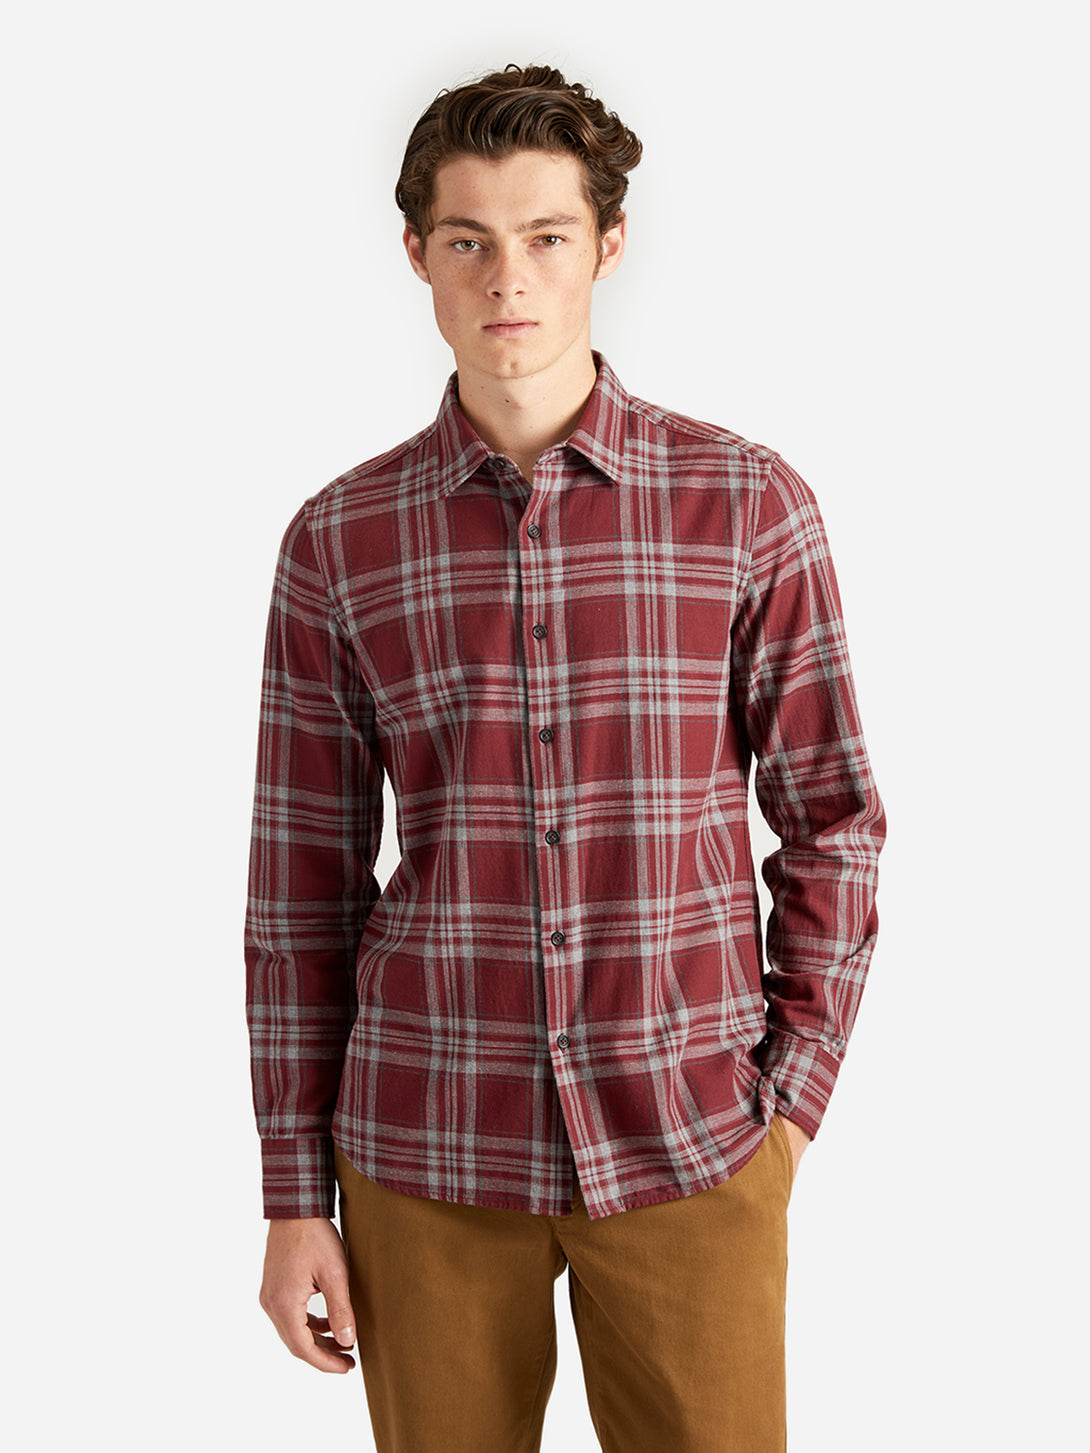 ons garage men's shirt vino